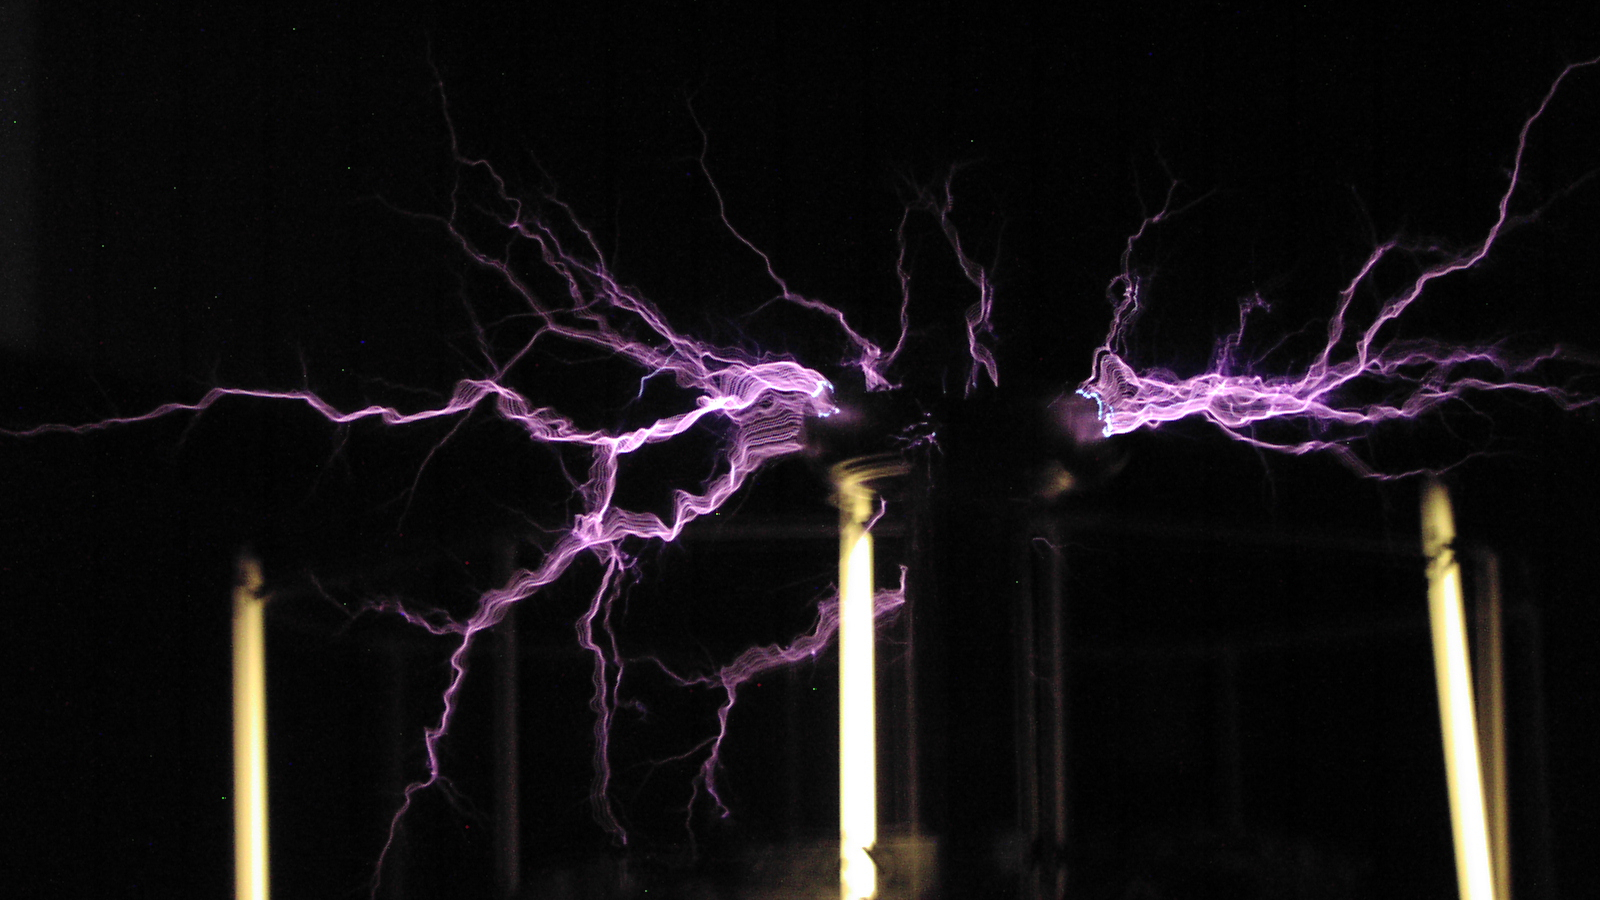 Free Download Tesla Coil Wallpaper The Tesla Coil In Action